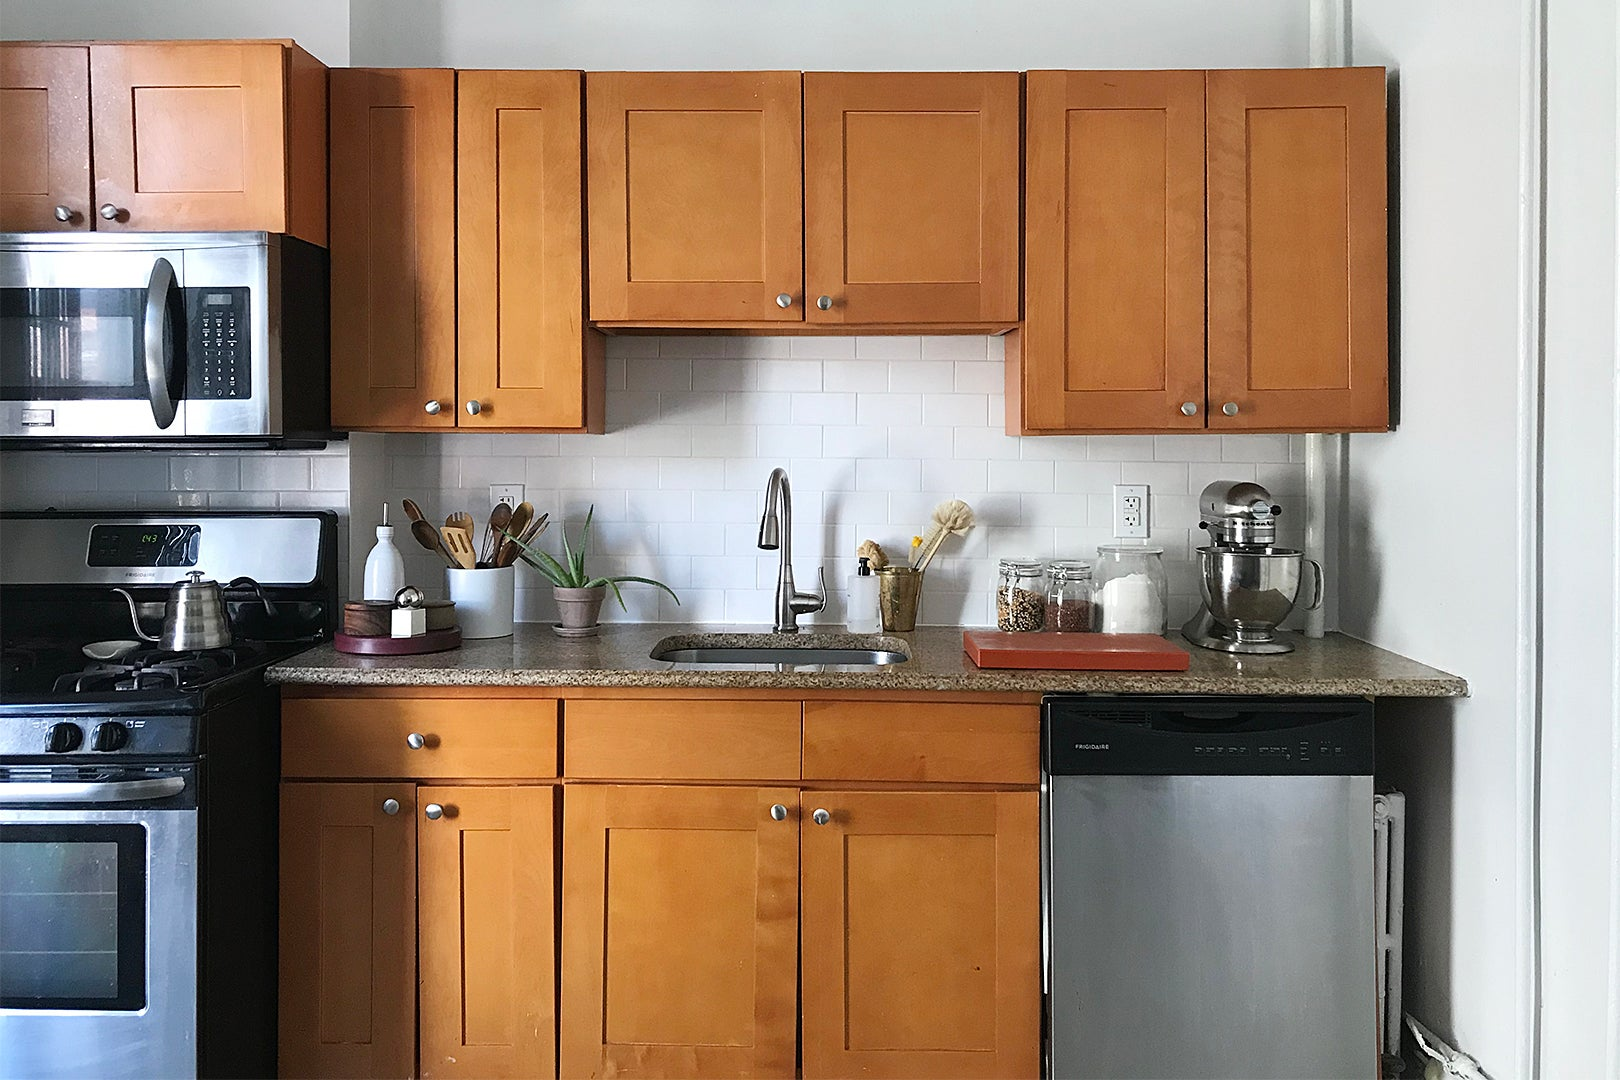 Before - wooden cabinets